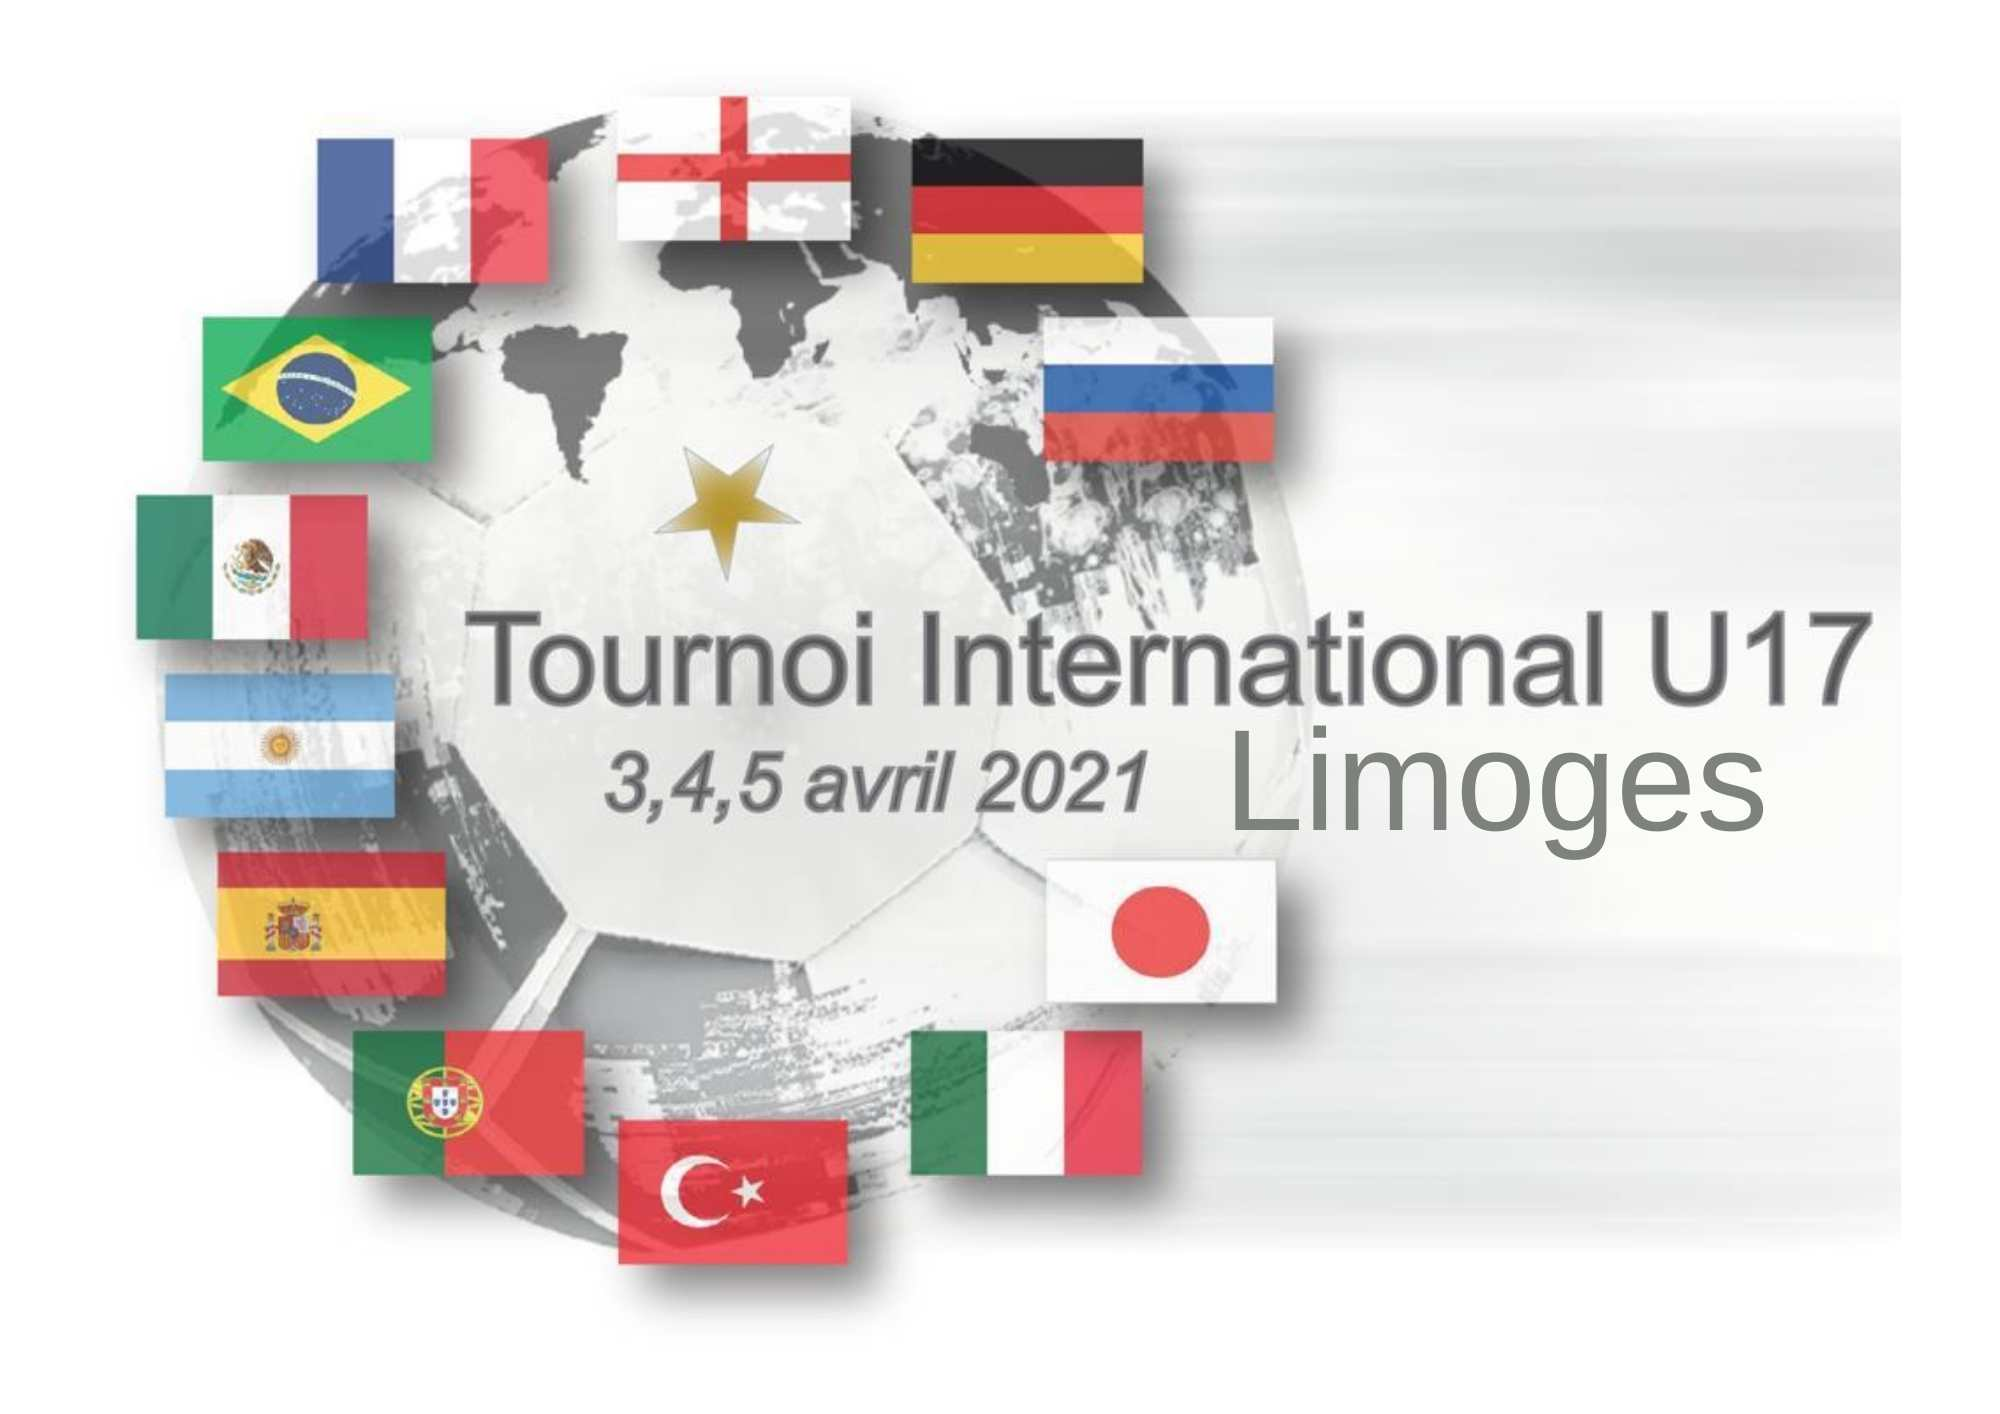 Tournoi international